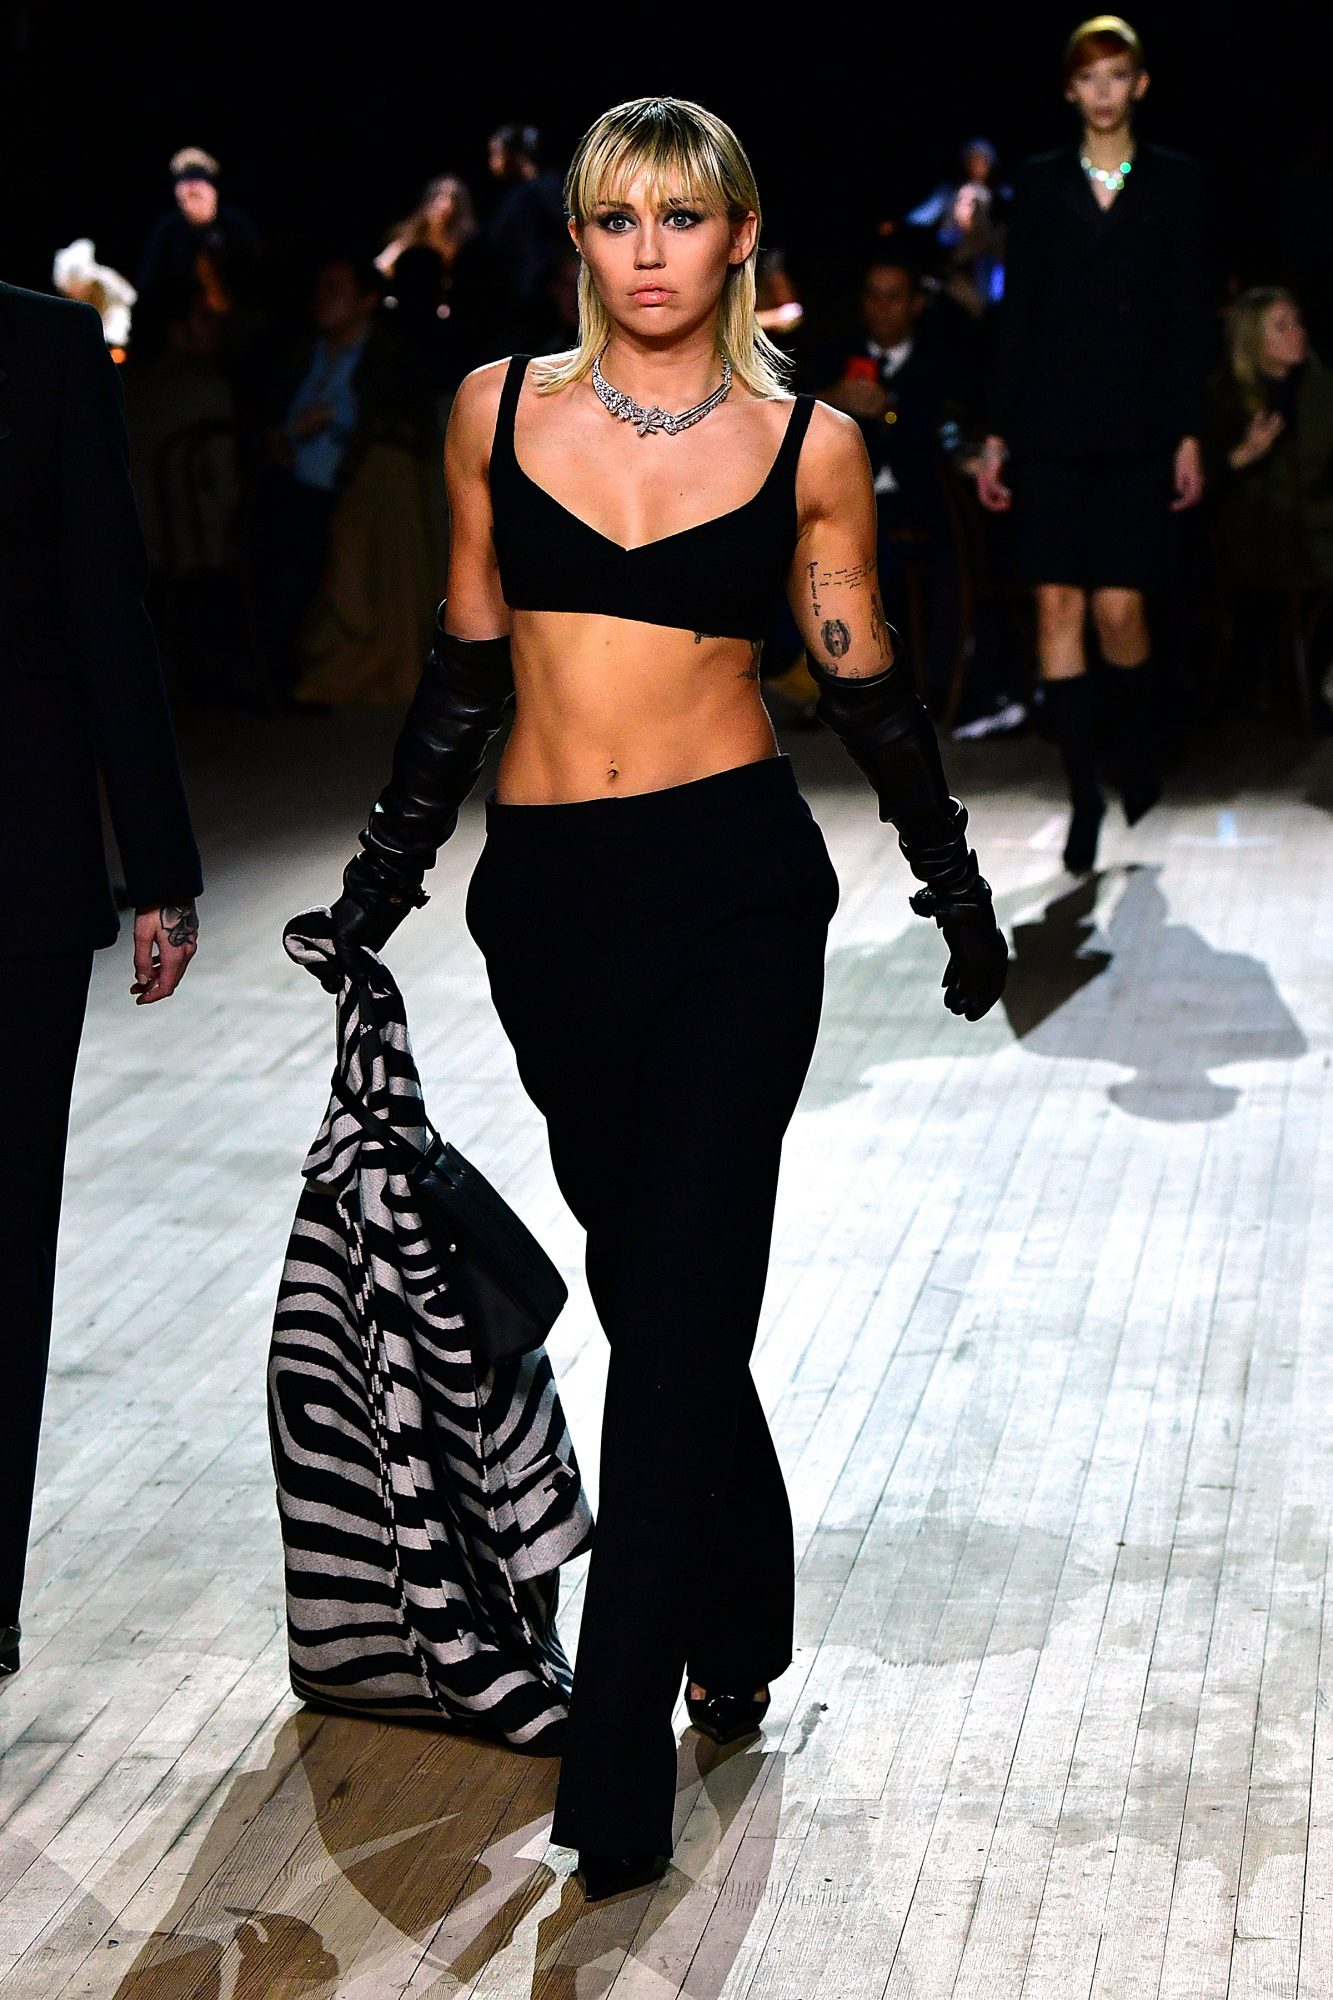 Miley Cyrus walks the runway at the Marc Jacobs Fall 2020 runway show during New York Fashion Week